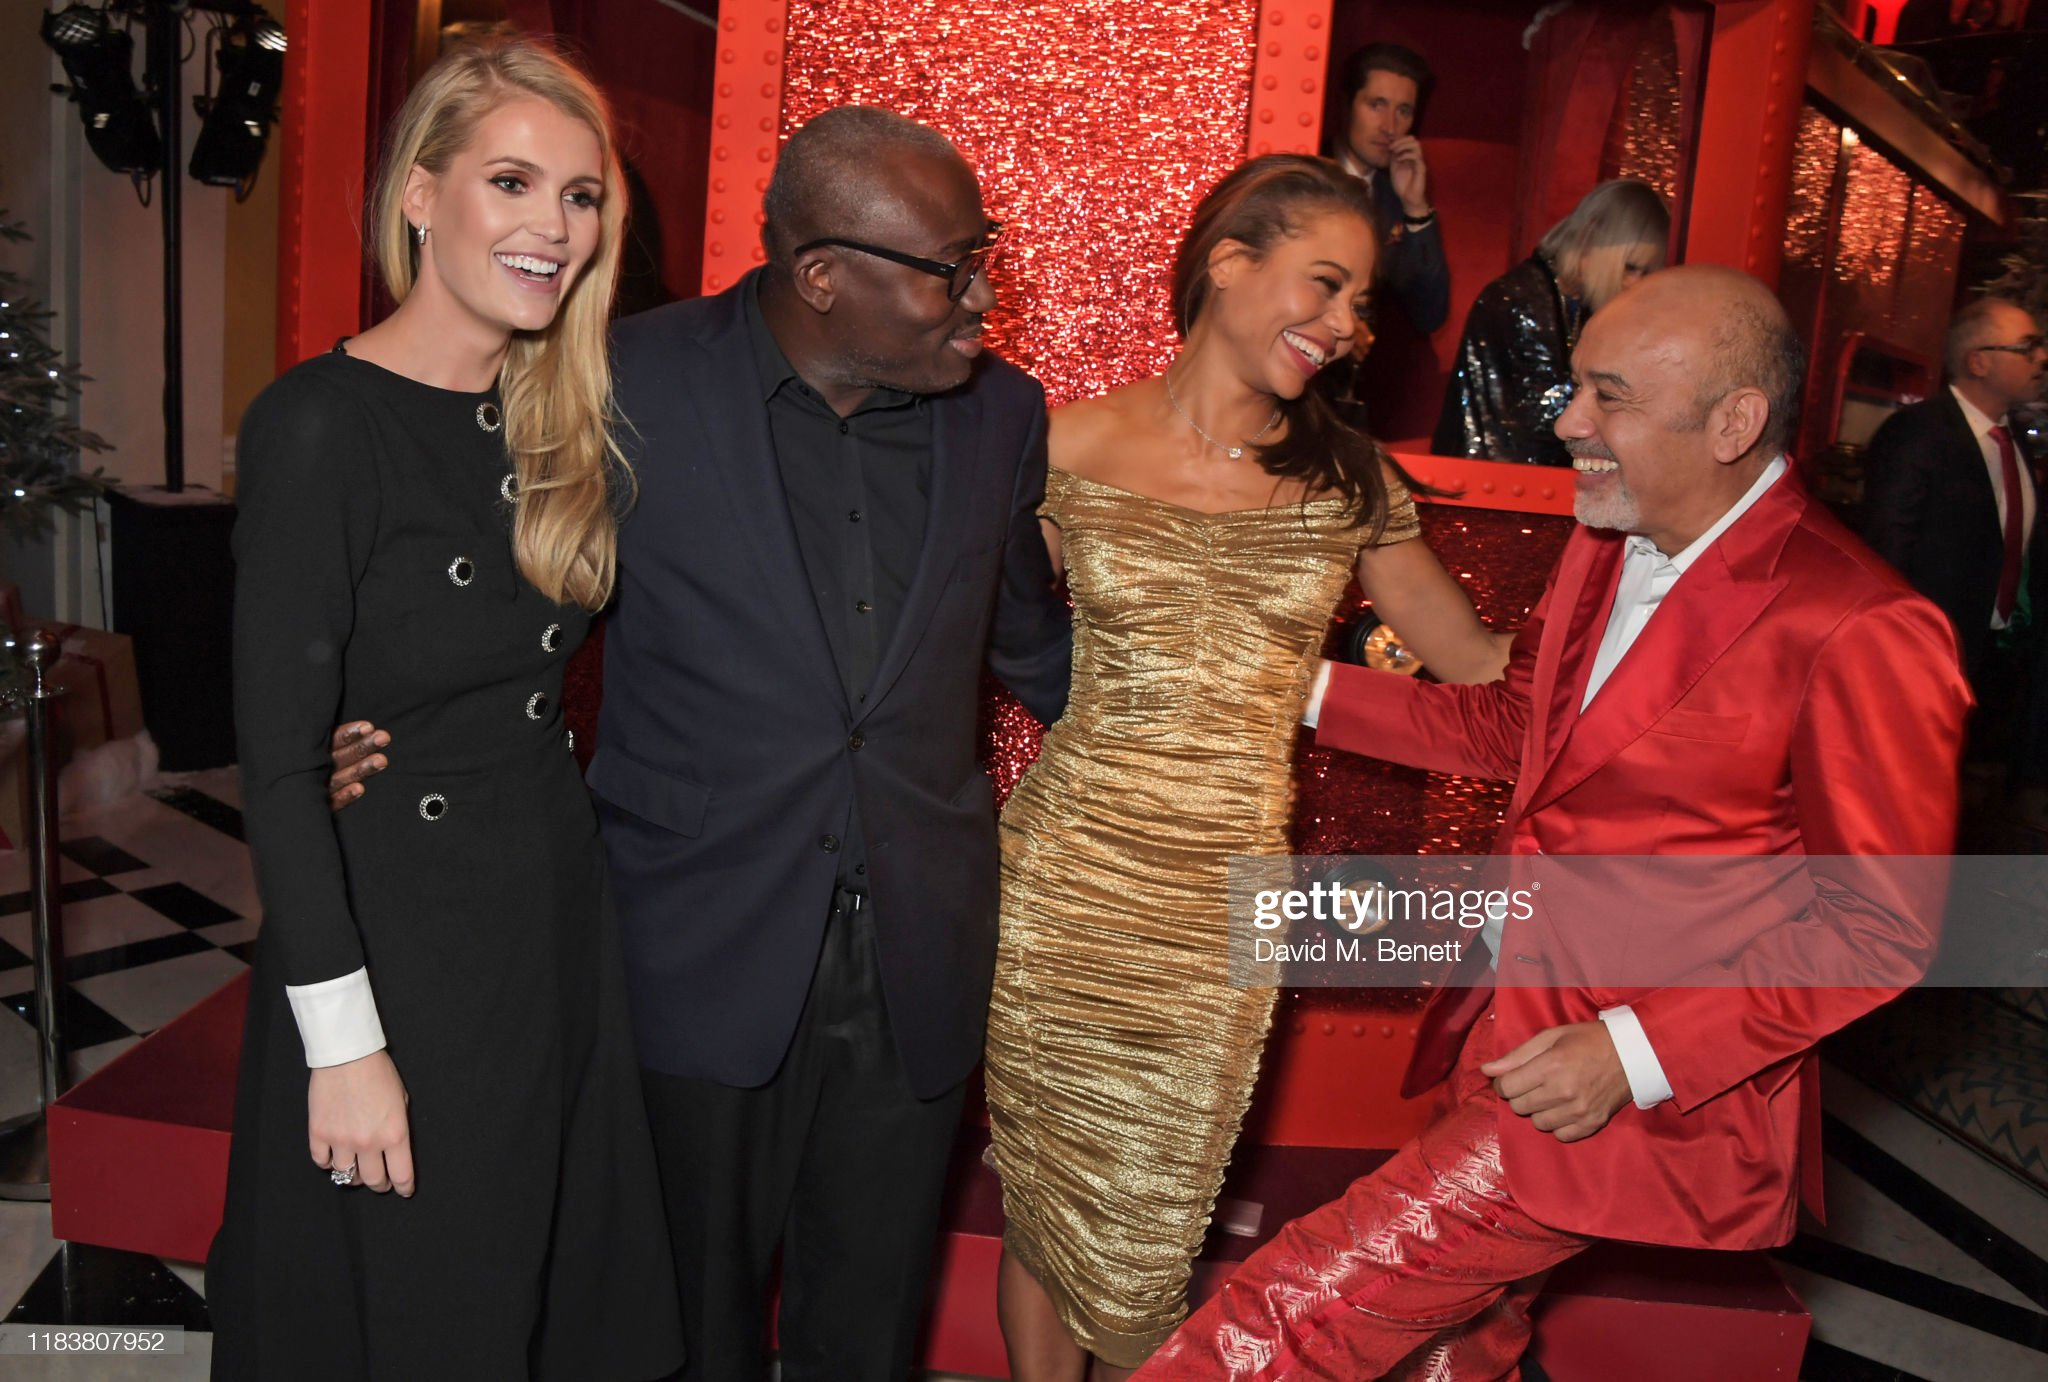 https://media.gettyimages.com/photos/lady-kitty-spencer-edward-enninful-emma-weymouth-and-christian-the-picture-id1183807952?s=2048x2048